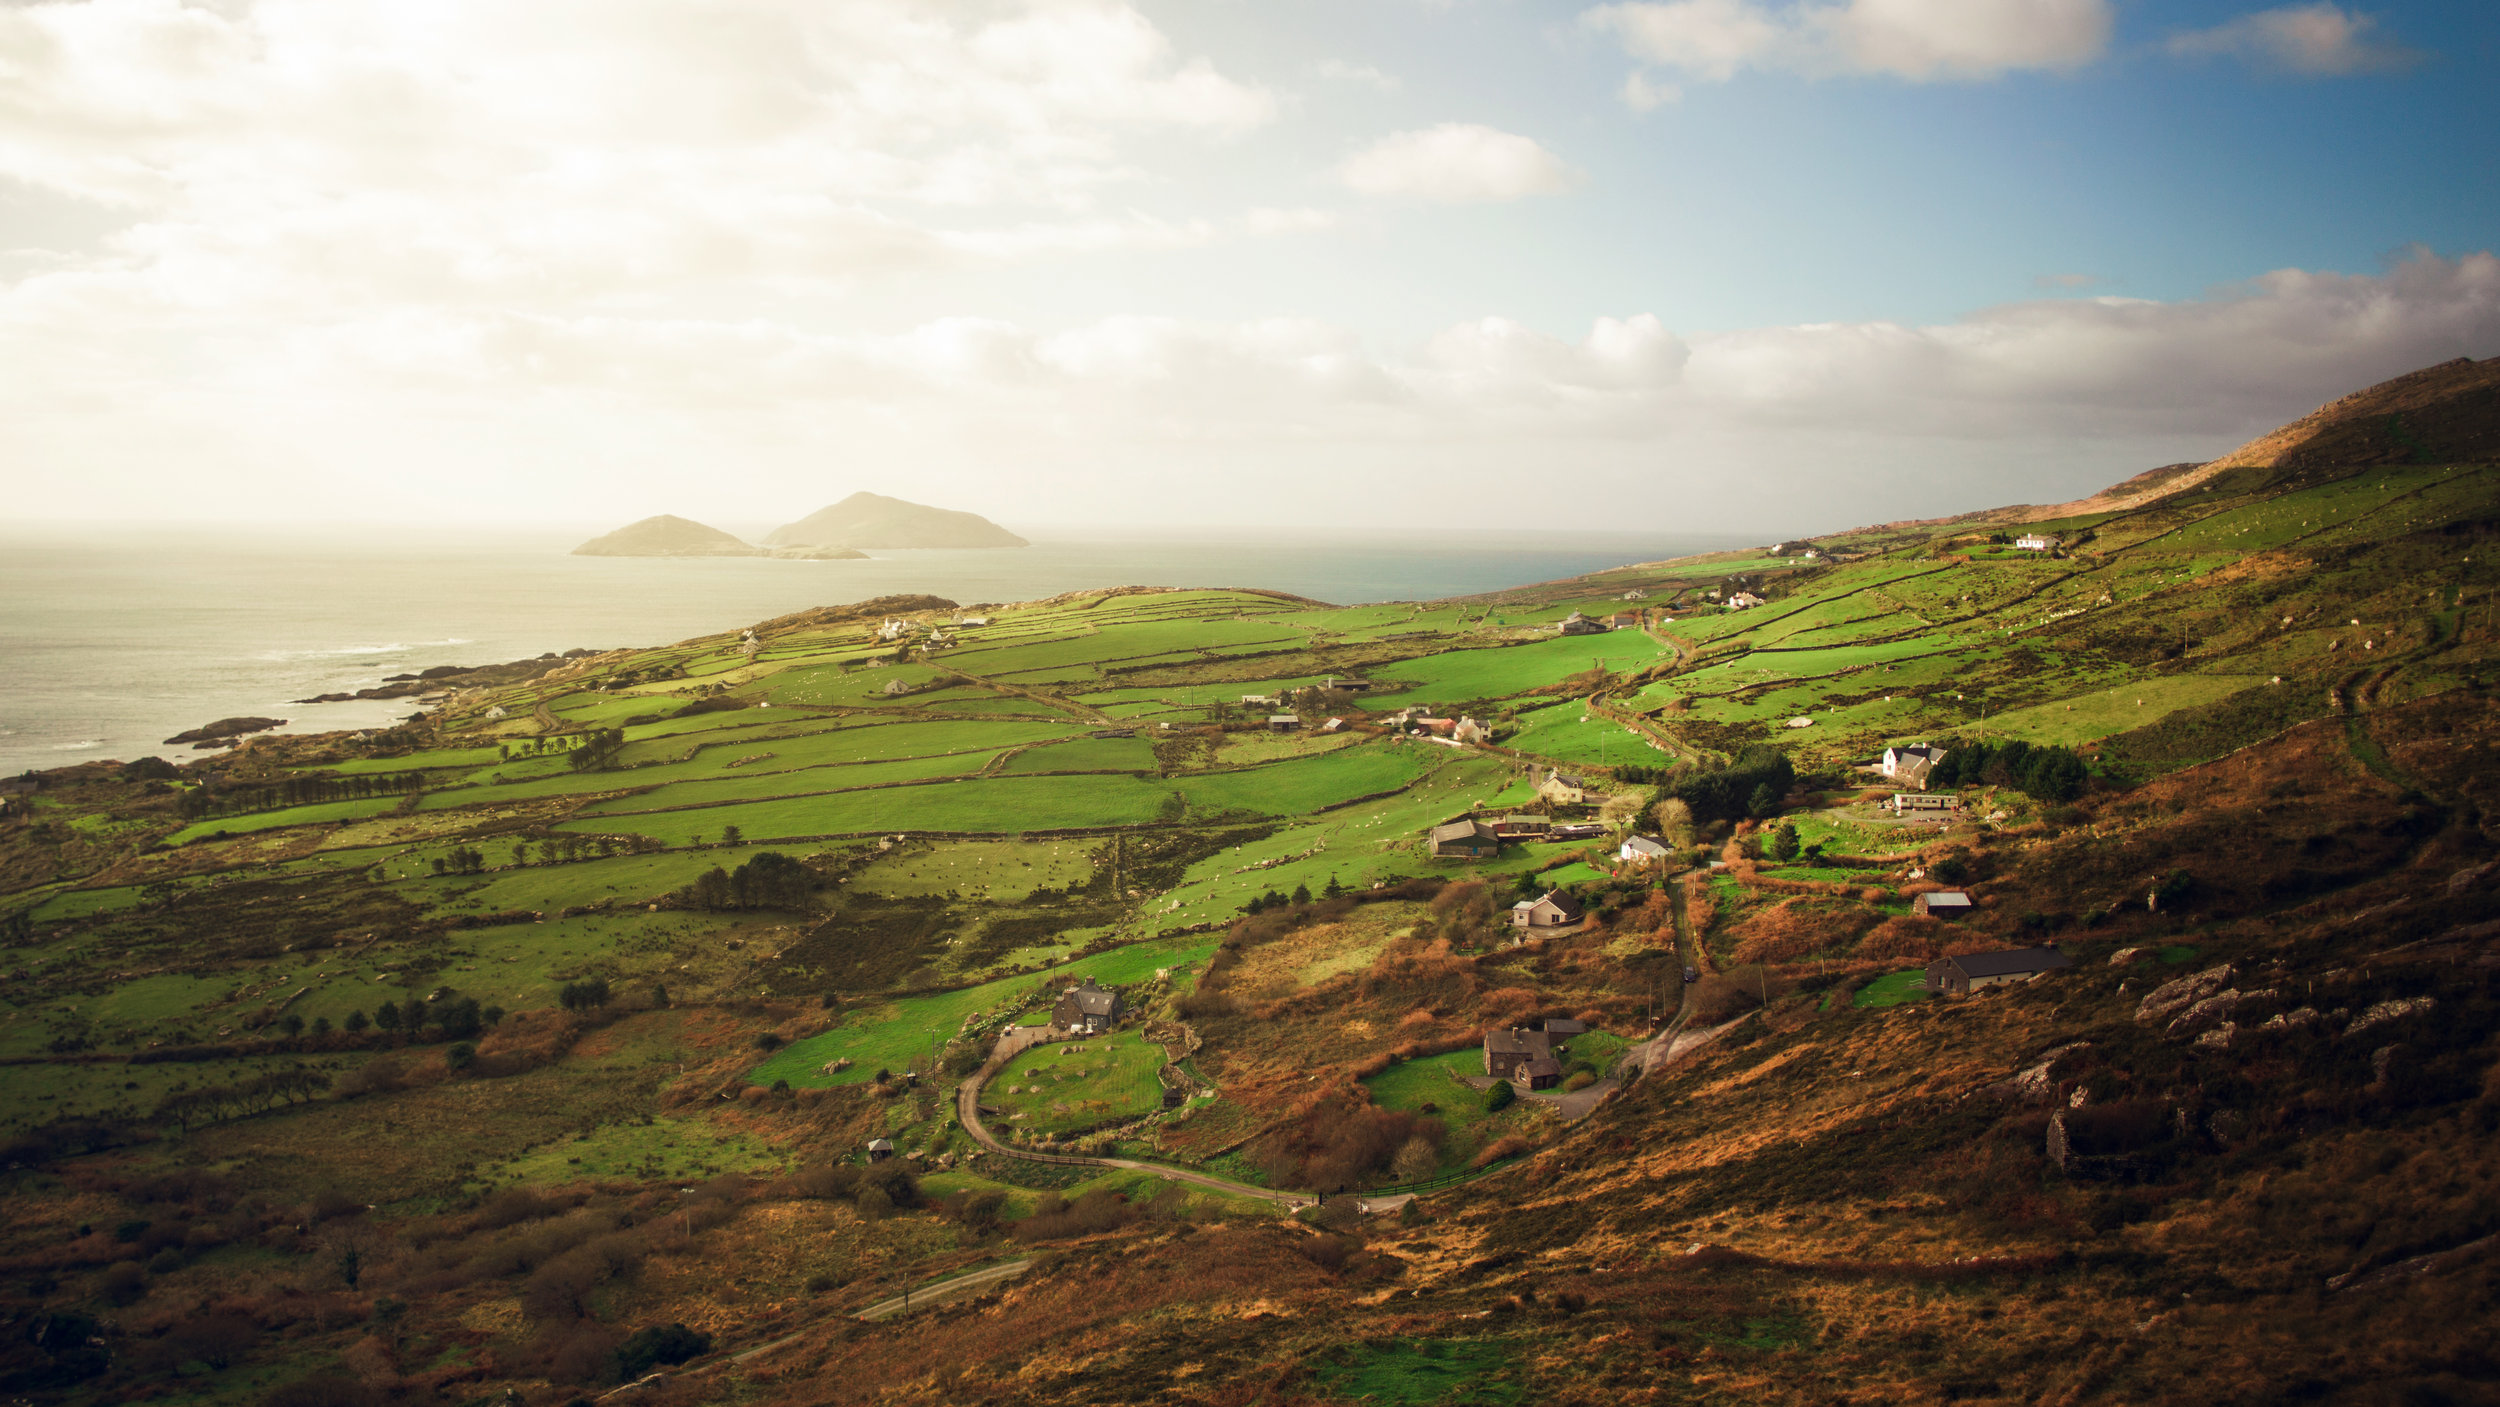 Ireland: The Place - TRADITION MEETS THE FUTURELEARNING MEETS INNOVATIONKNOWLEDGE MEETS THE WORLD